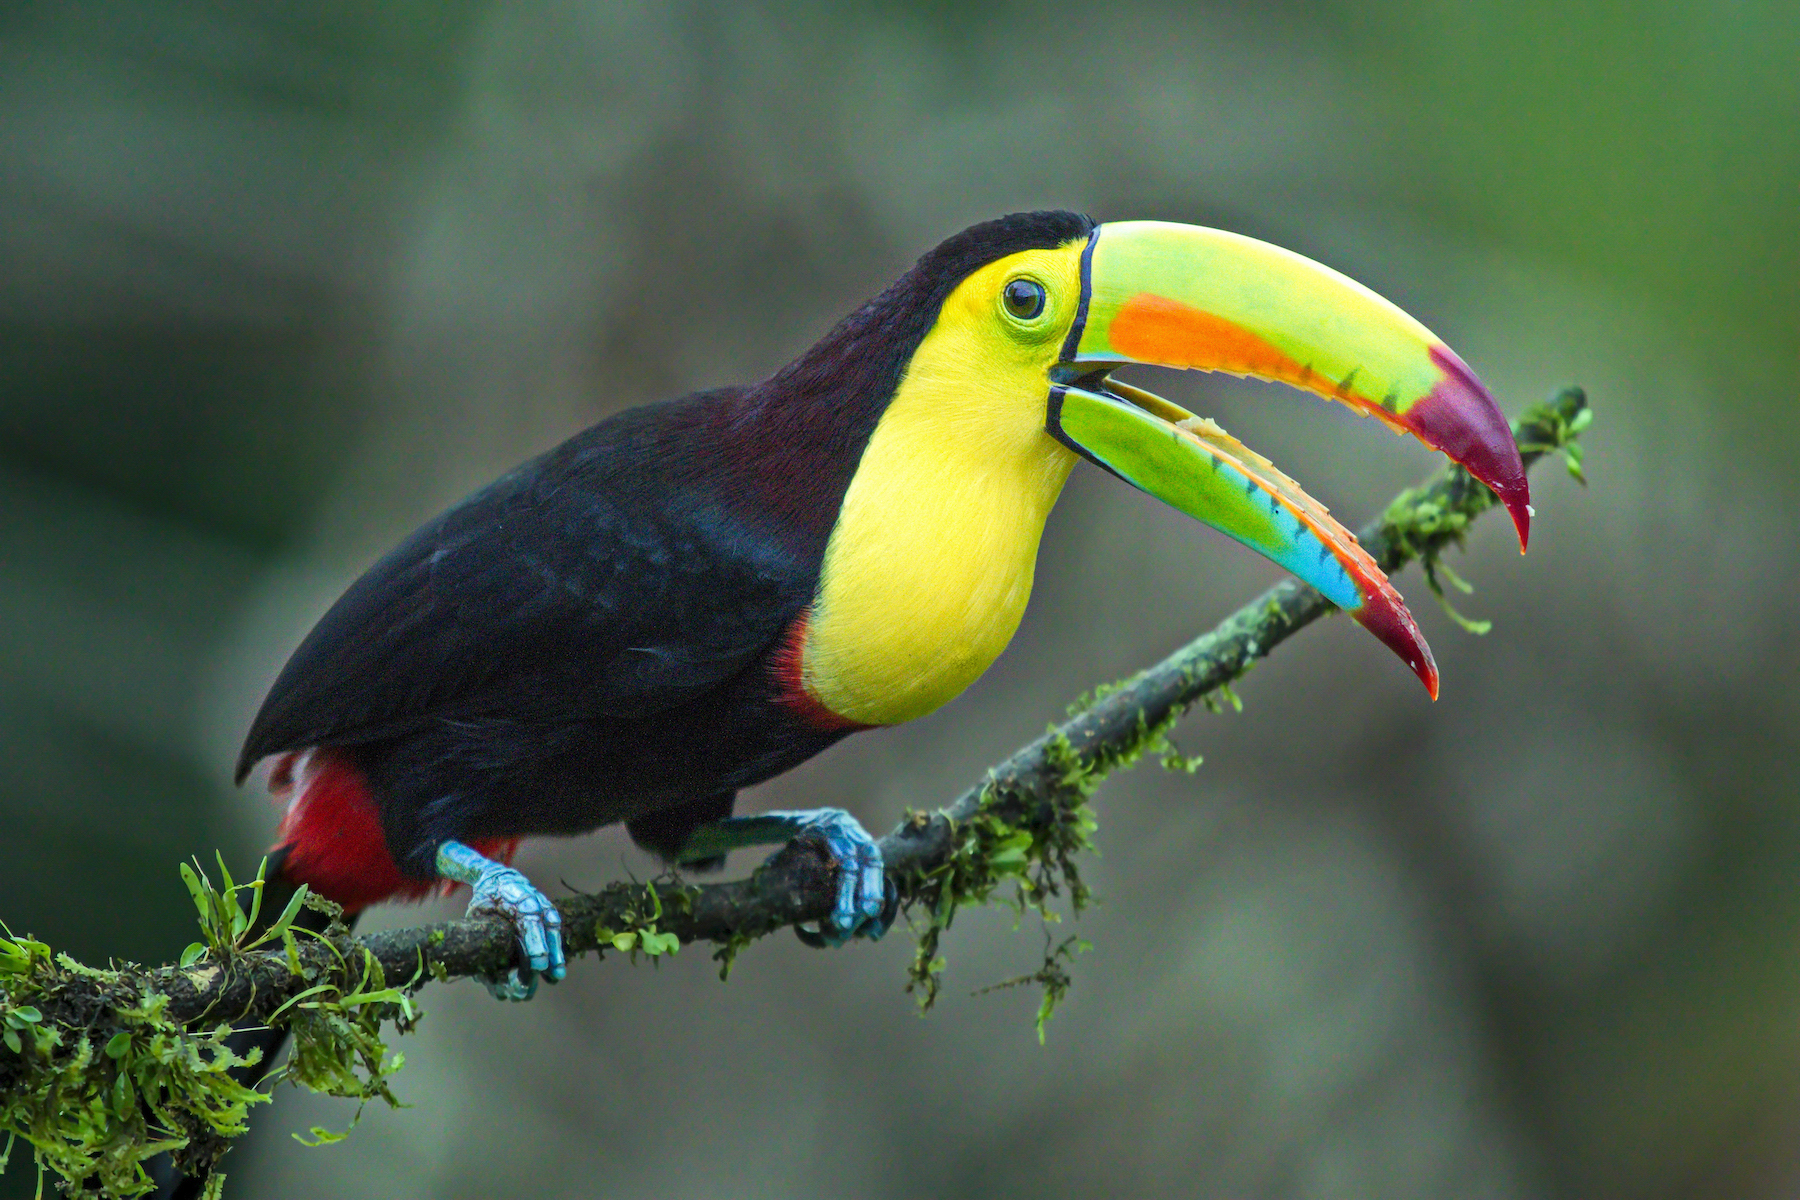 Keel-billed Toucan by Edward Munoz